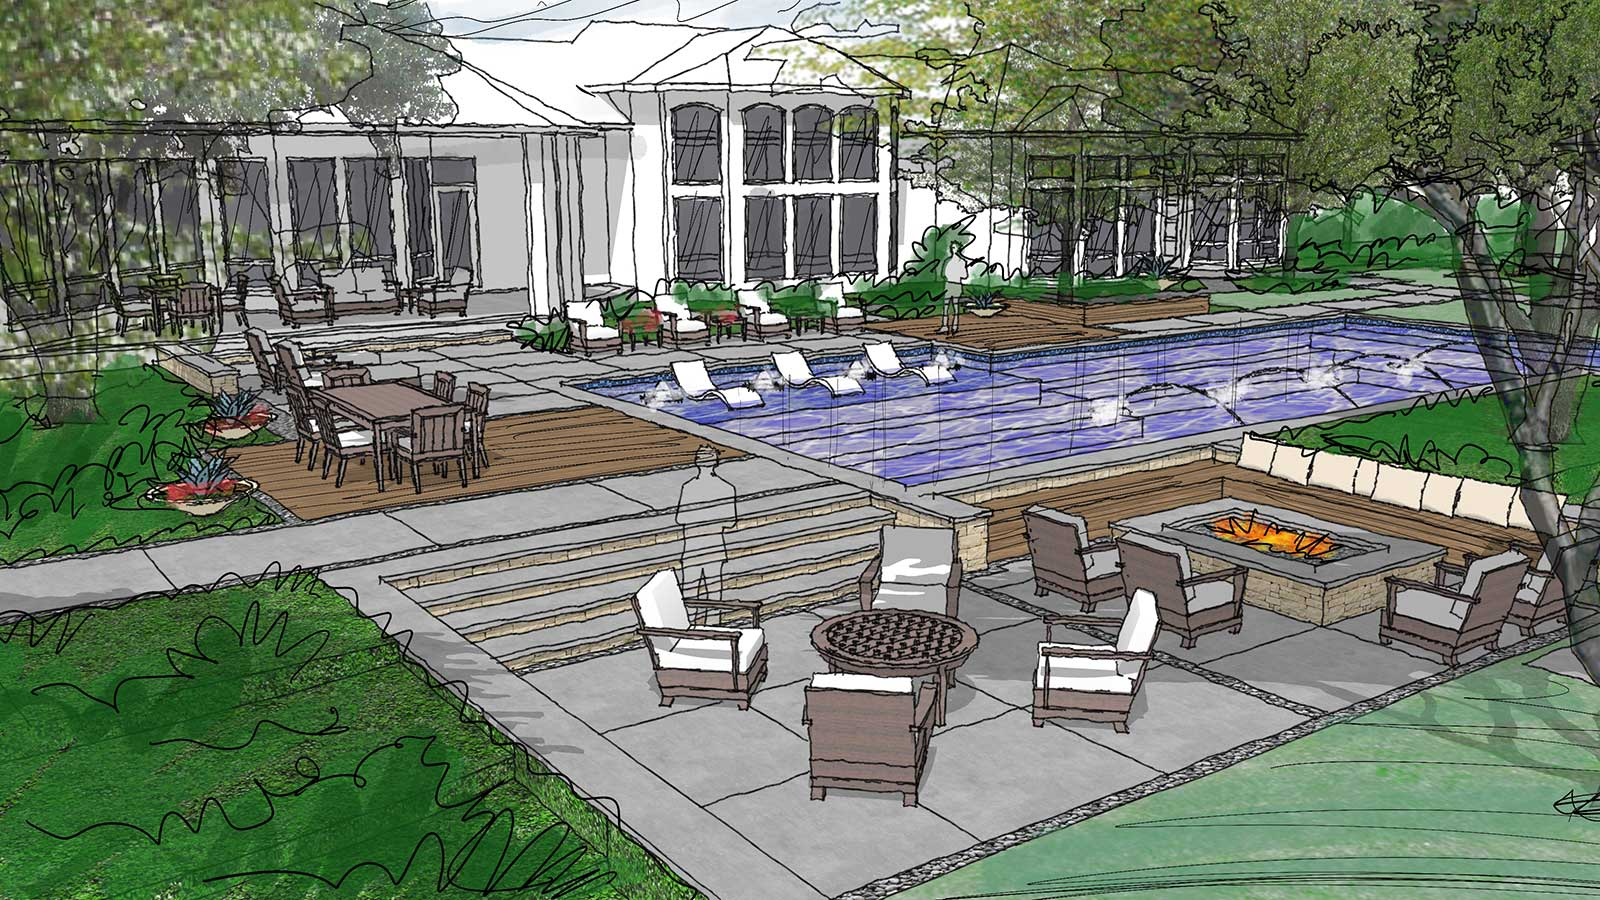 ddla-design_preliminary-pool-sketch.jpg